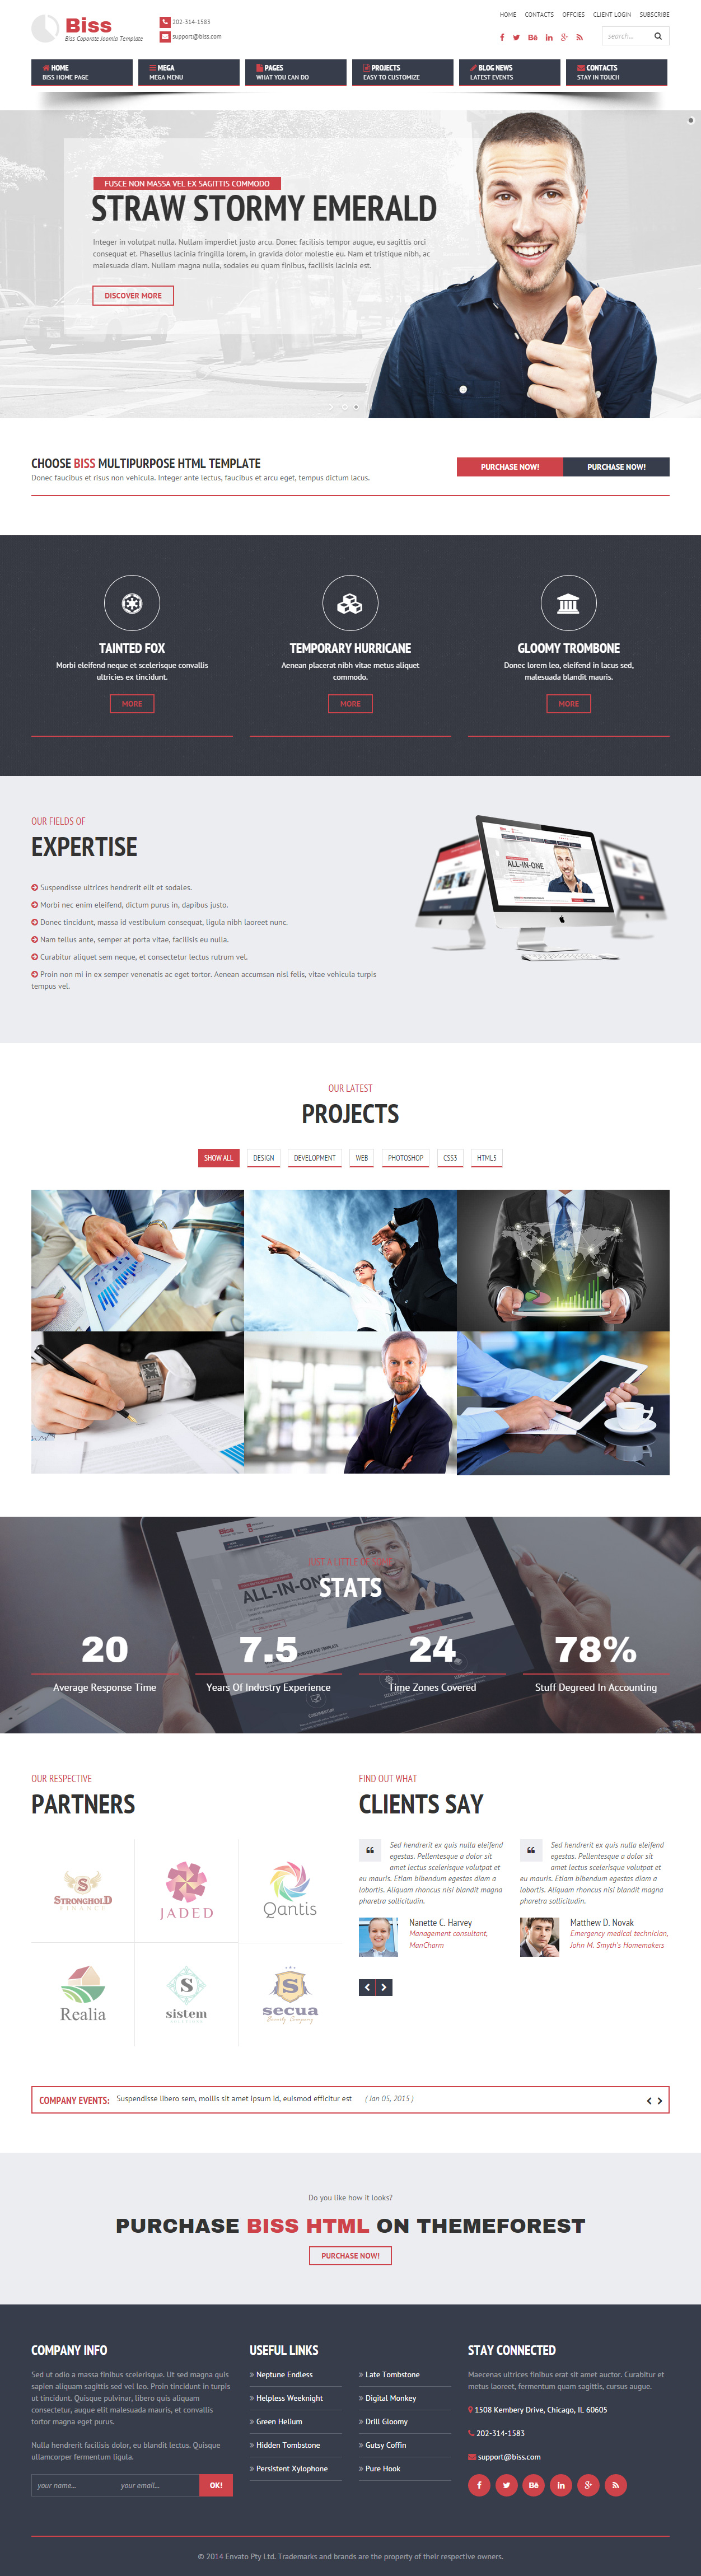 25+ Best Joomla Corporate Template 2017 - Responsive Miracle